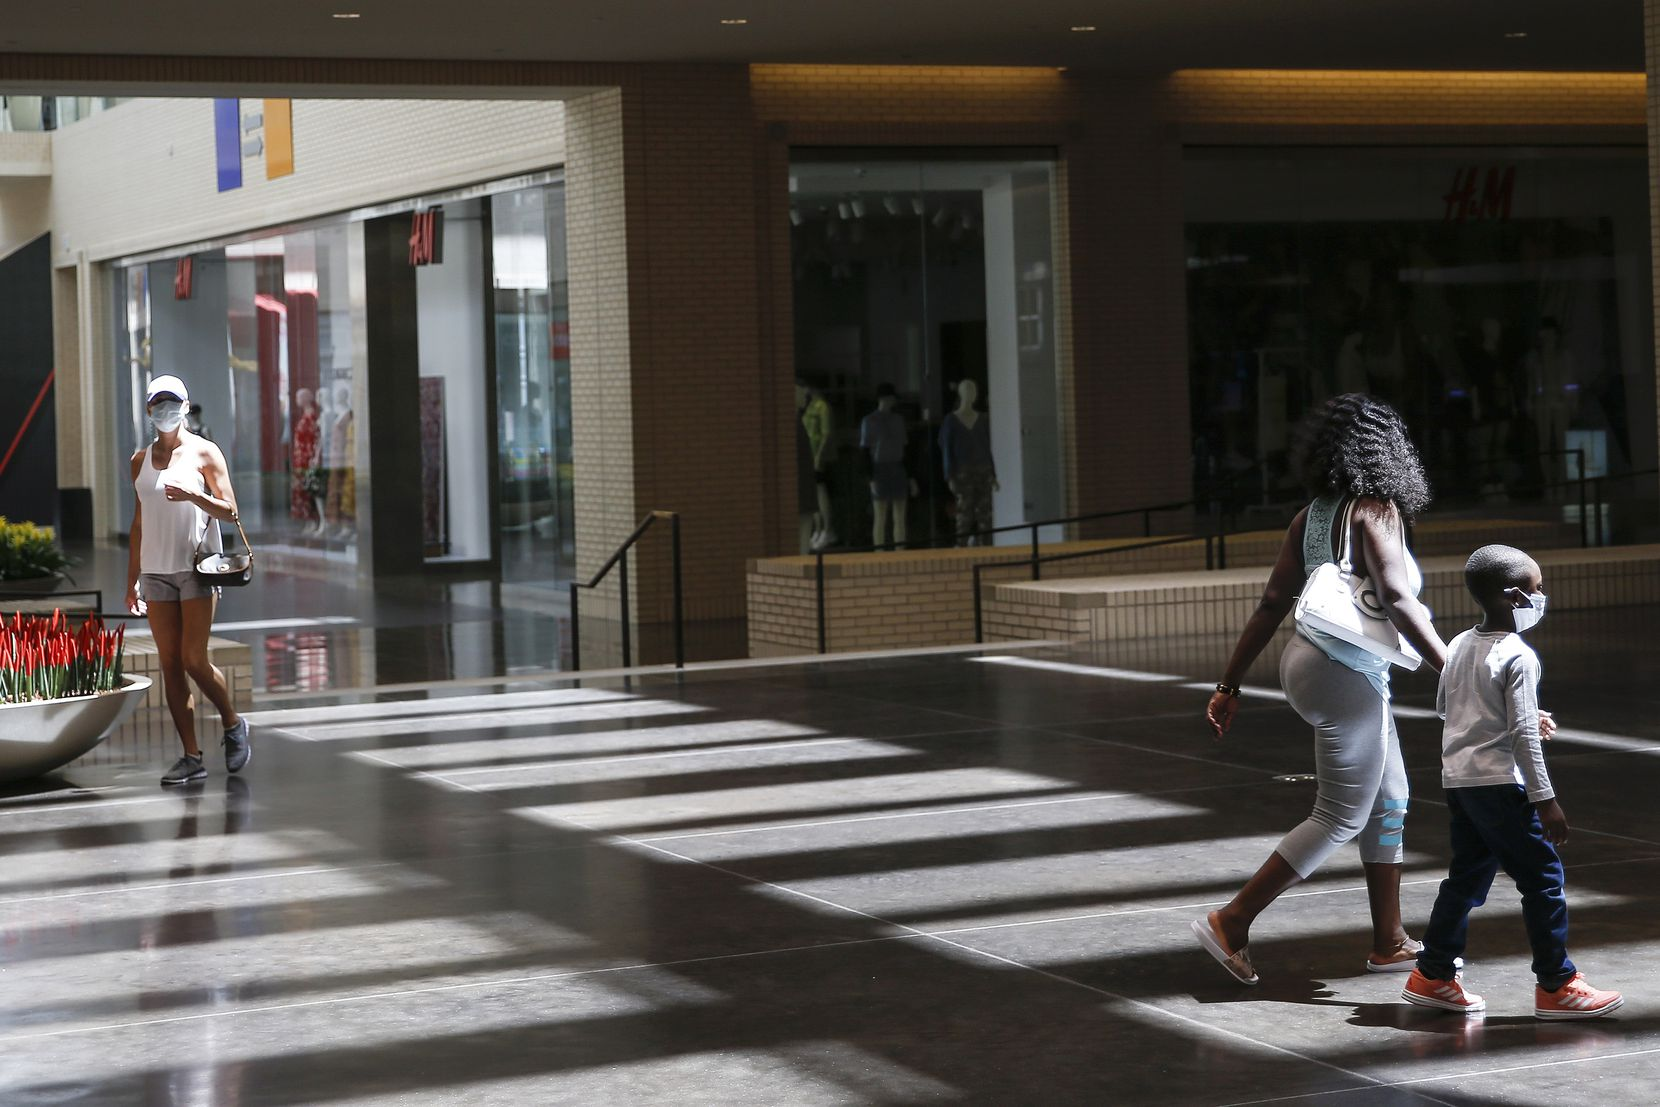 Shoppers walk through NorthPark Center mall on Friday, May 1, 2020 in Dallas, Texas. Texas Gov. Greg Abbott's executive order requiring Texans to stay at home expired on Thursday, allowing businesses to reopen under certain conditions as soon as Friday. Stores, restaurants and movie theaters may open as long as they maintain only a 25% occupancy and follow social distancing. Under those guidelines, malls can also open but food courts, play areas and interactive displays or settings must remain closed. (Ryan Michalesko/Staff Photographer)